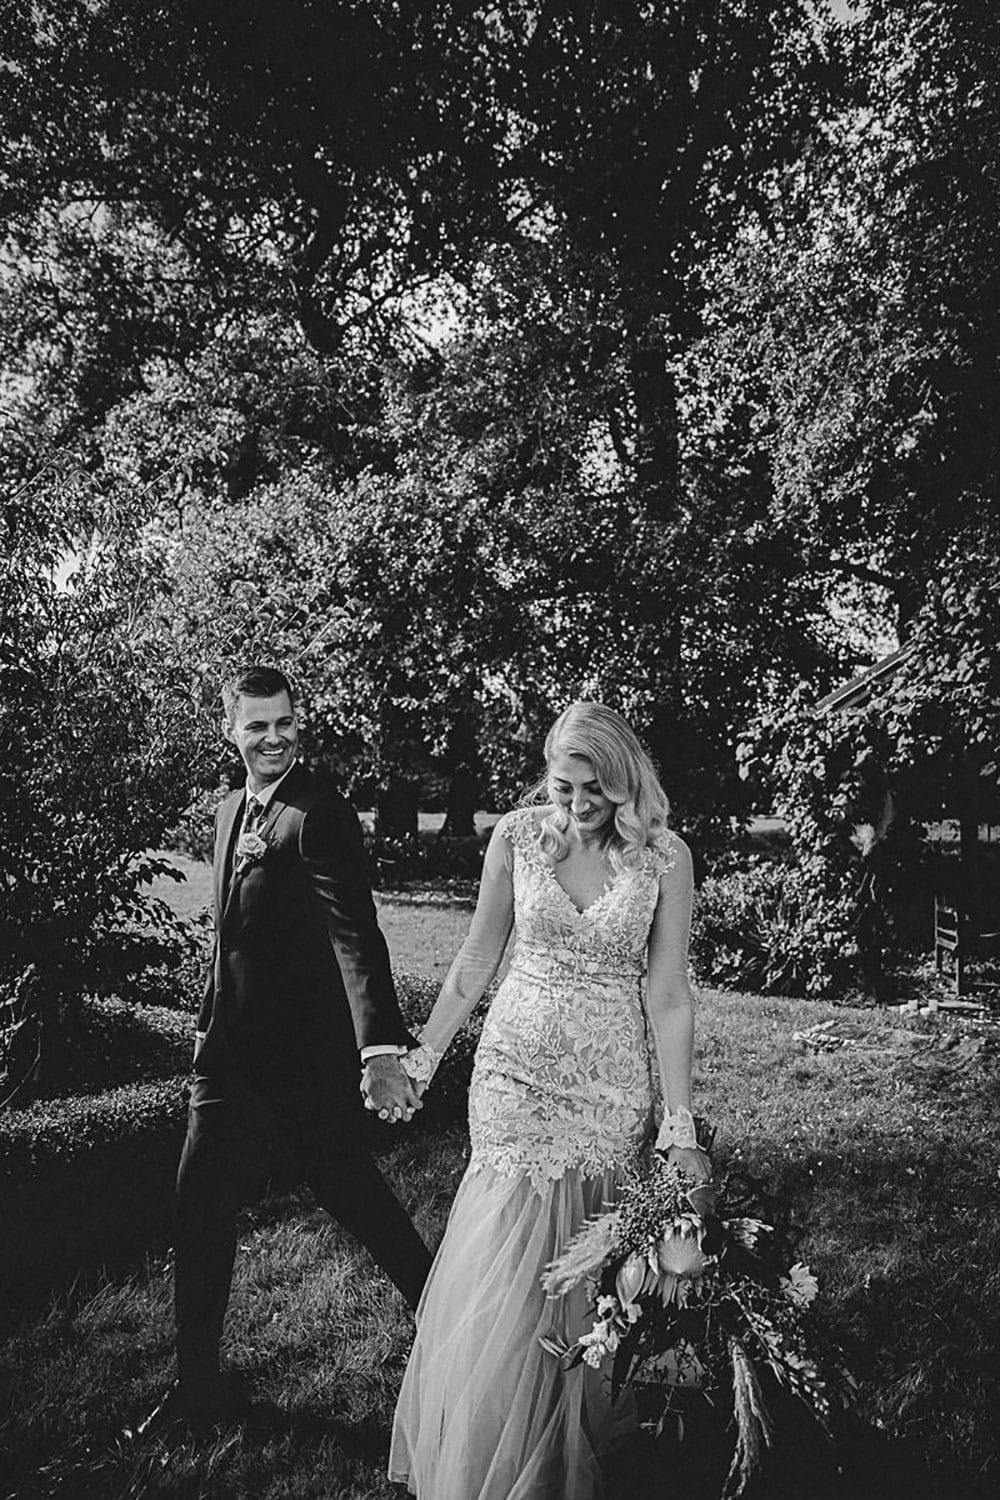 Real Weddings | Vinka Design | Real Brides Wearing Vinka Gowns | Rikki-Lee and Adam hold hands with Rikki-Lee in stunning bespoke wedding gown with beautiful lace detail long sheer sleeves with cuff detail and floaty chiffon layers at bottom of dress